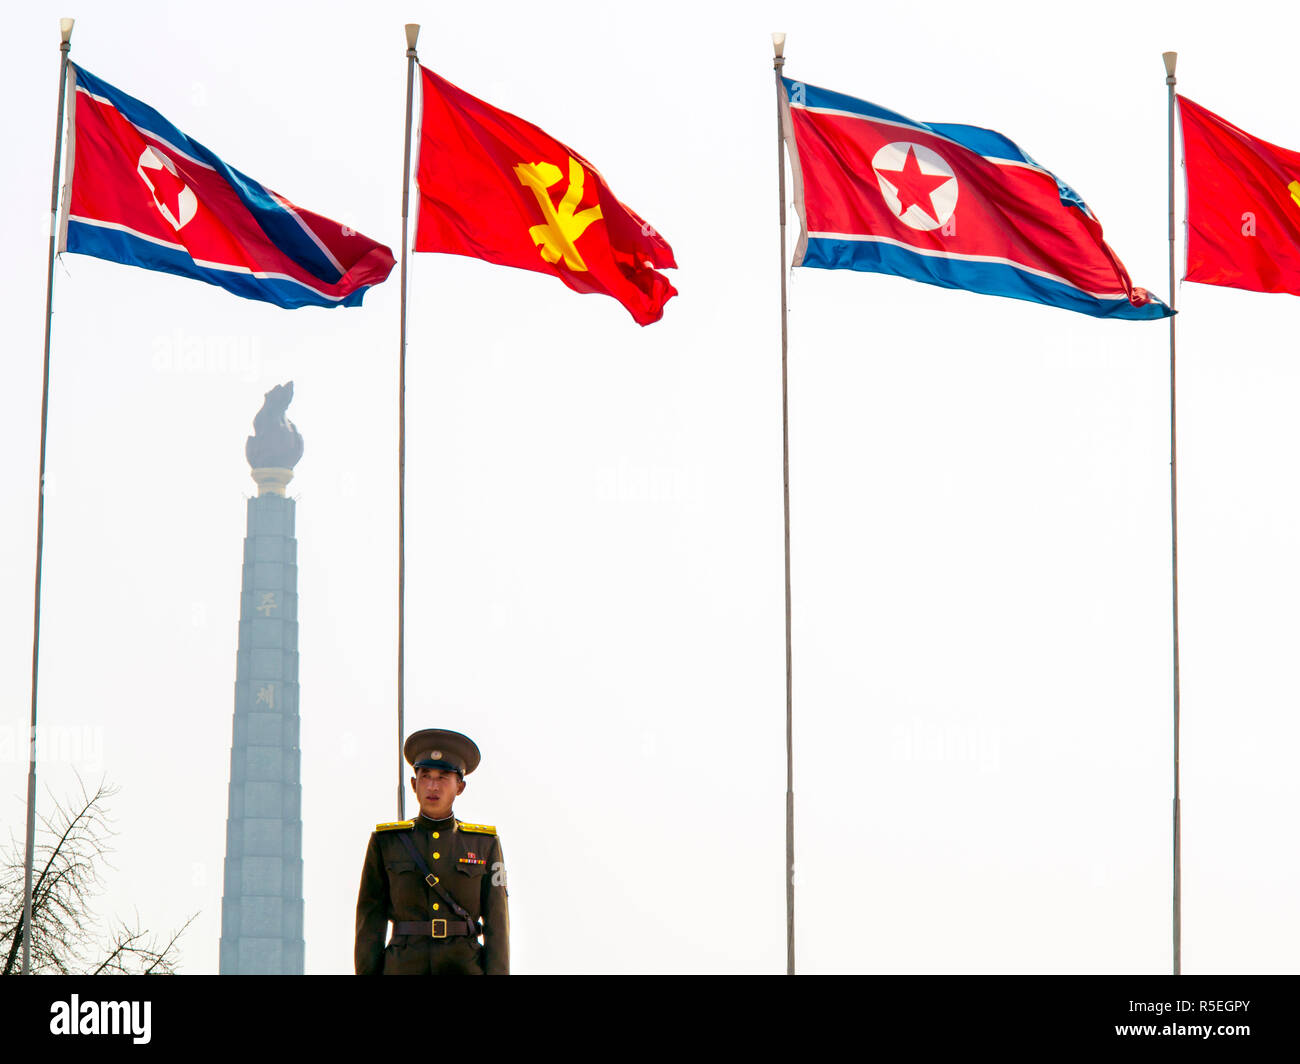 Democratic Peoples's Republic of Korea (DPRK), North Korea, Pyongyang, Juche Tower (symbol of the Juche Idea, penned by Kim Il Sung) - Stock Image